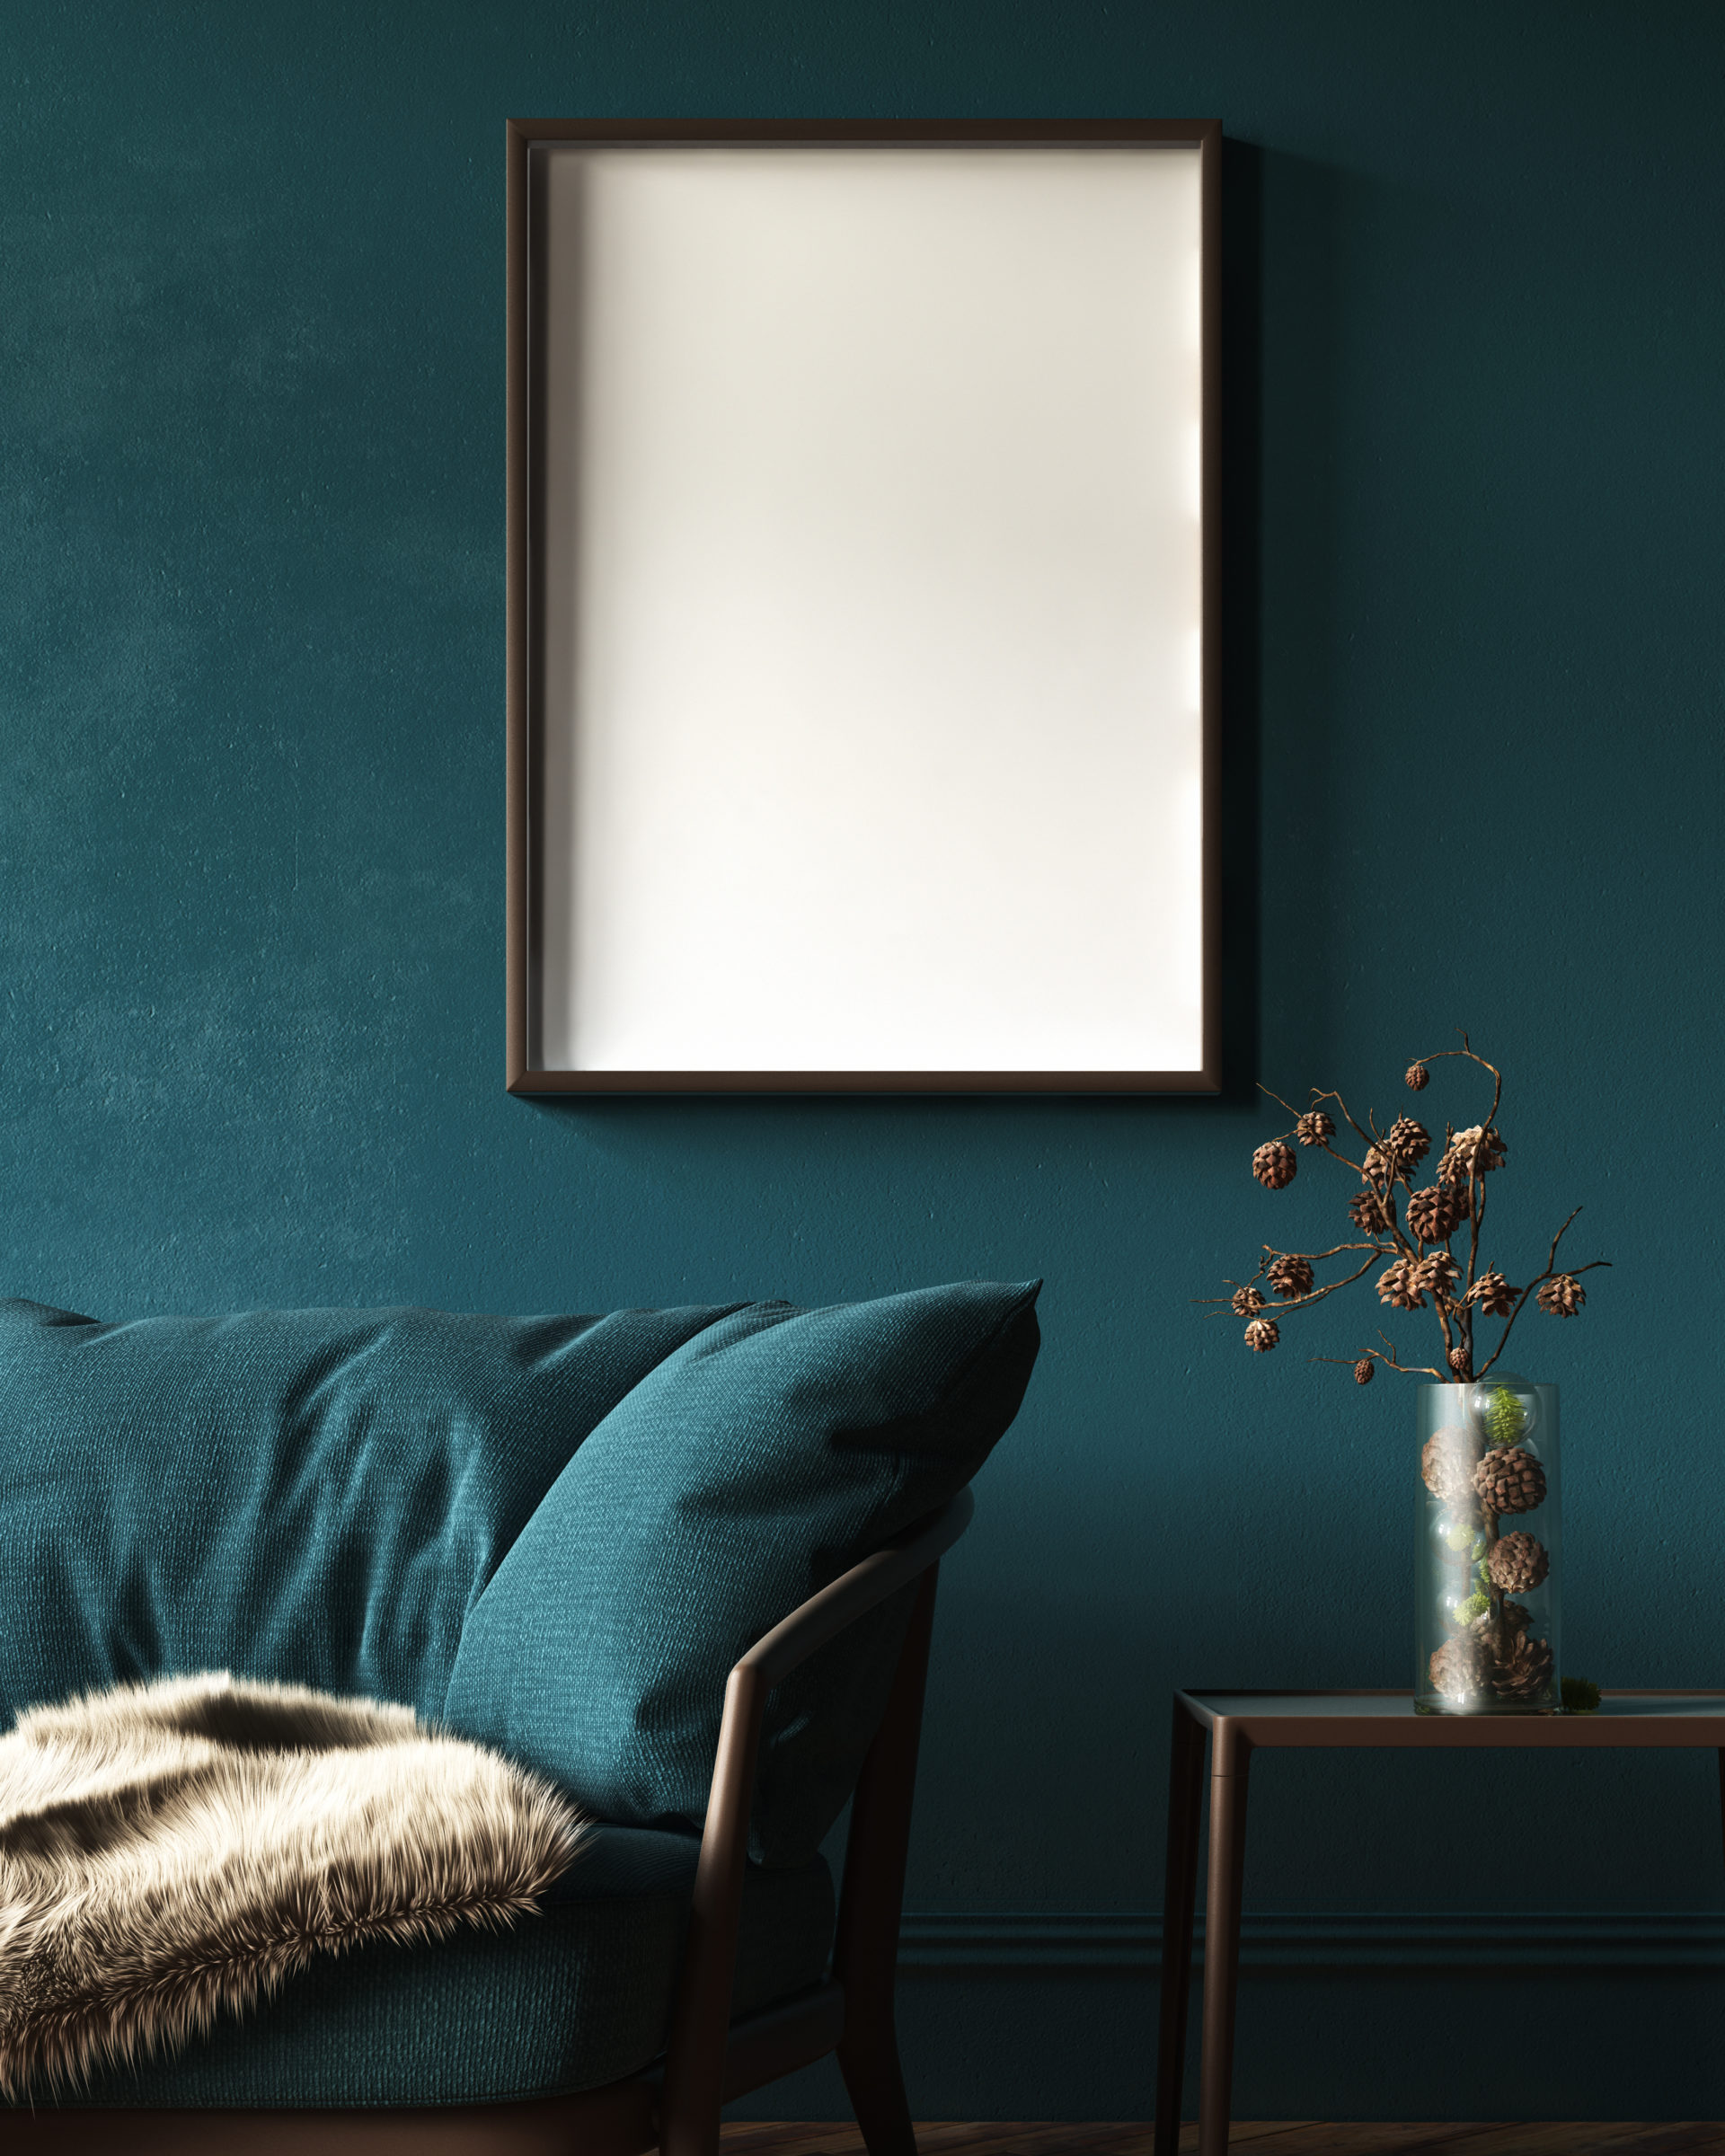 Mock Up Frame In Dark Green Home Interior With Sofa, Fur, Table And Branch In Vase, 3d Render